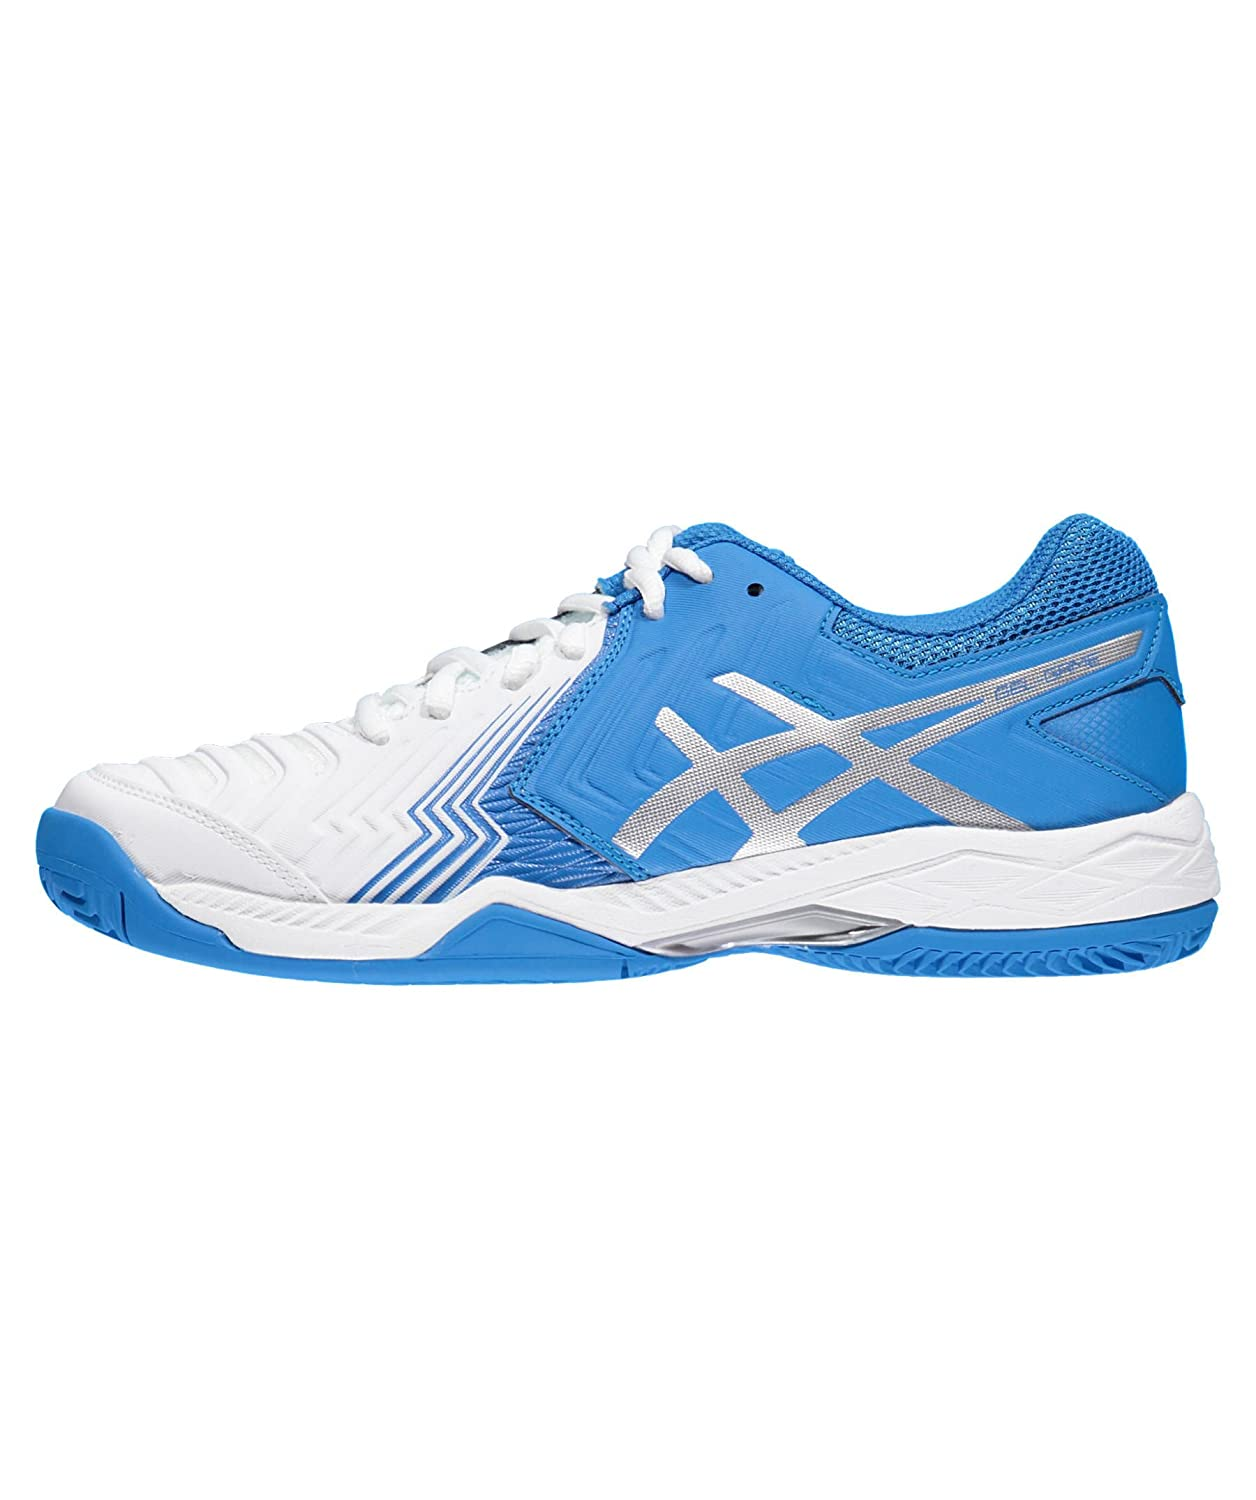 ASICS Gel di Game 6 6 6 Clay, Blu - Bianco, 42,5 8c47b5